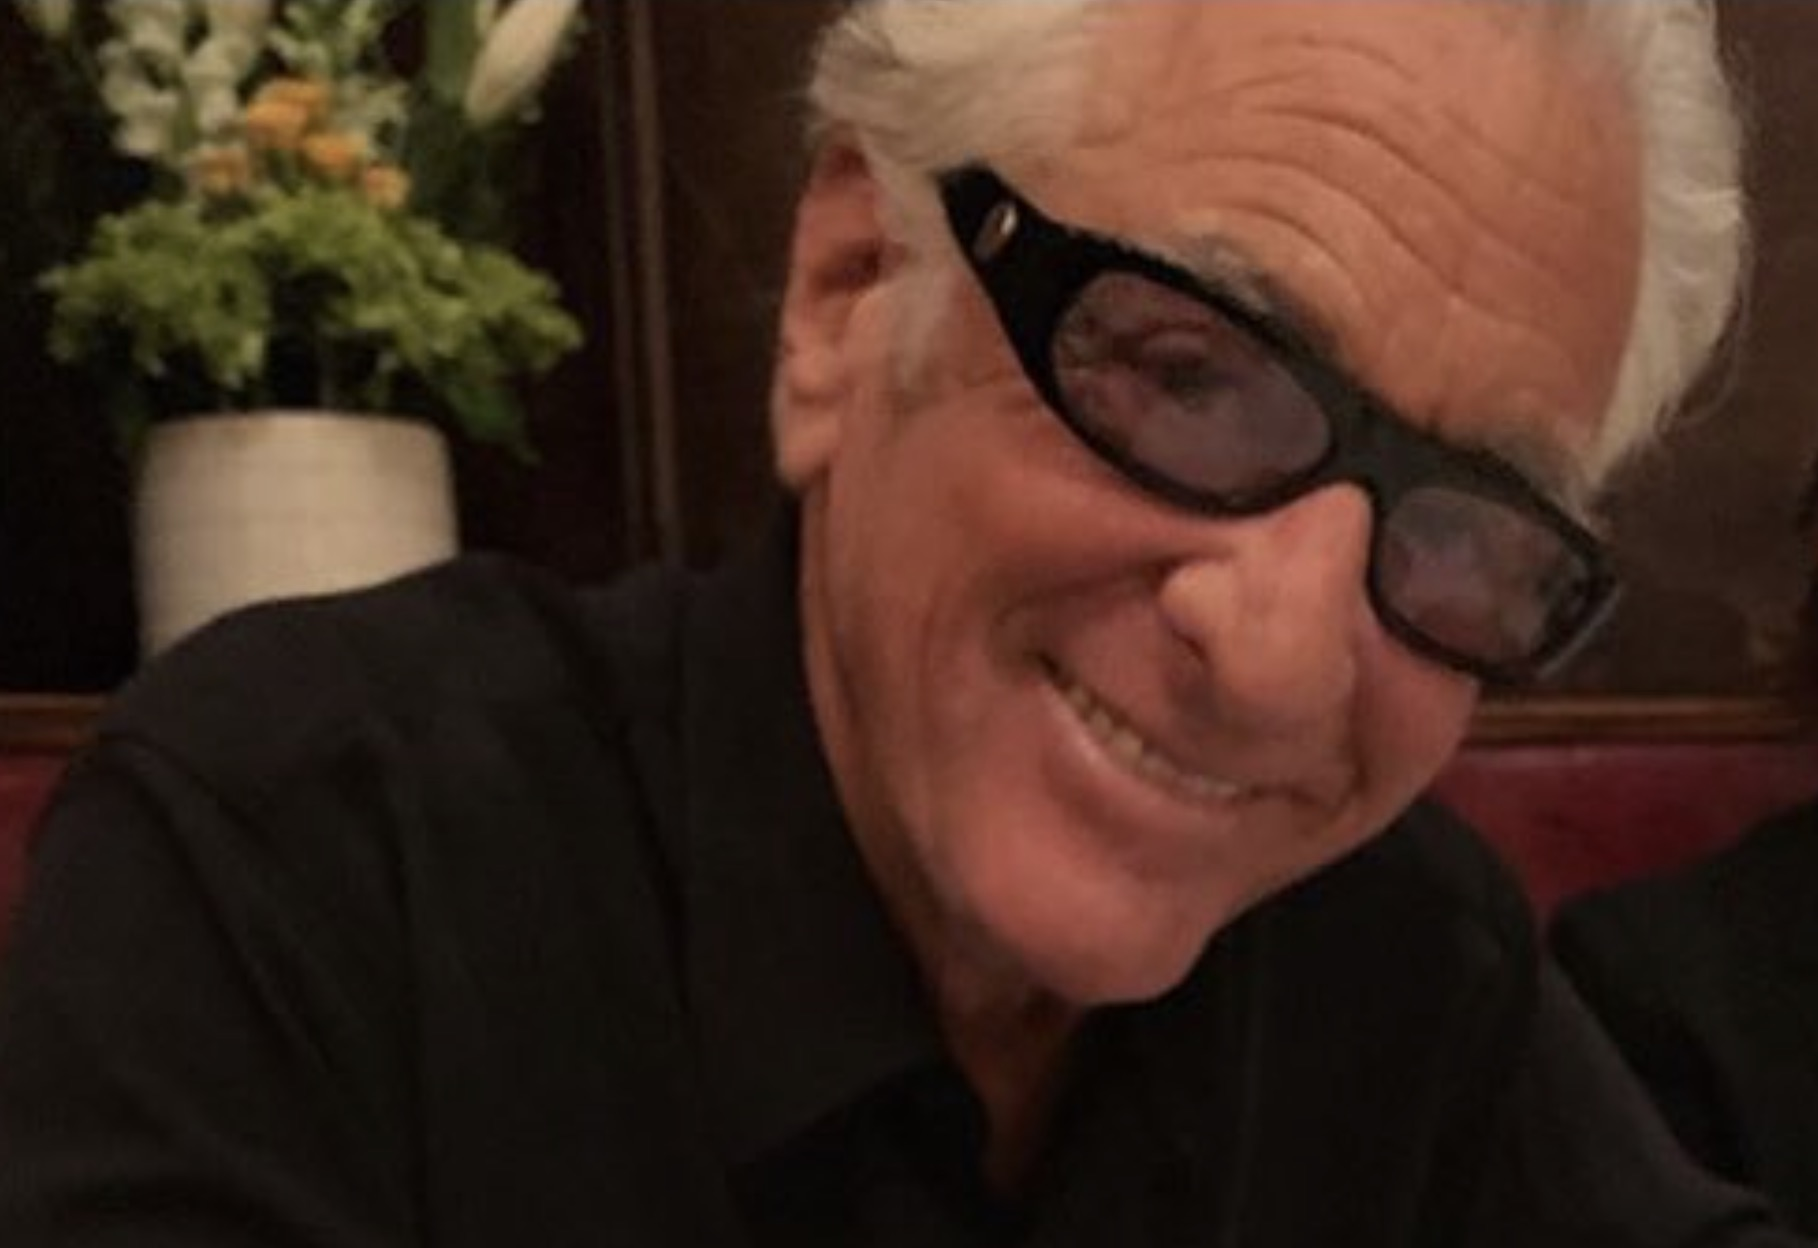 Storage-Wars-Barry-Weiss-https://twitter.com/paytheladylaura/status/1233917860340097024/photo/1